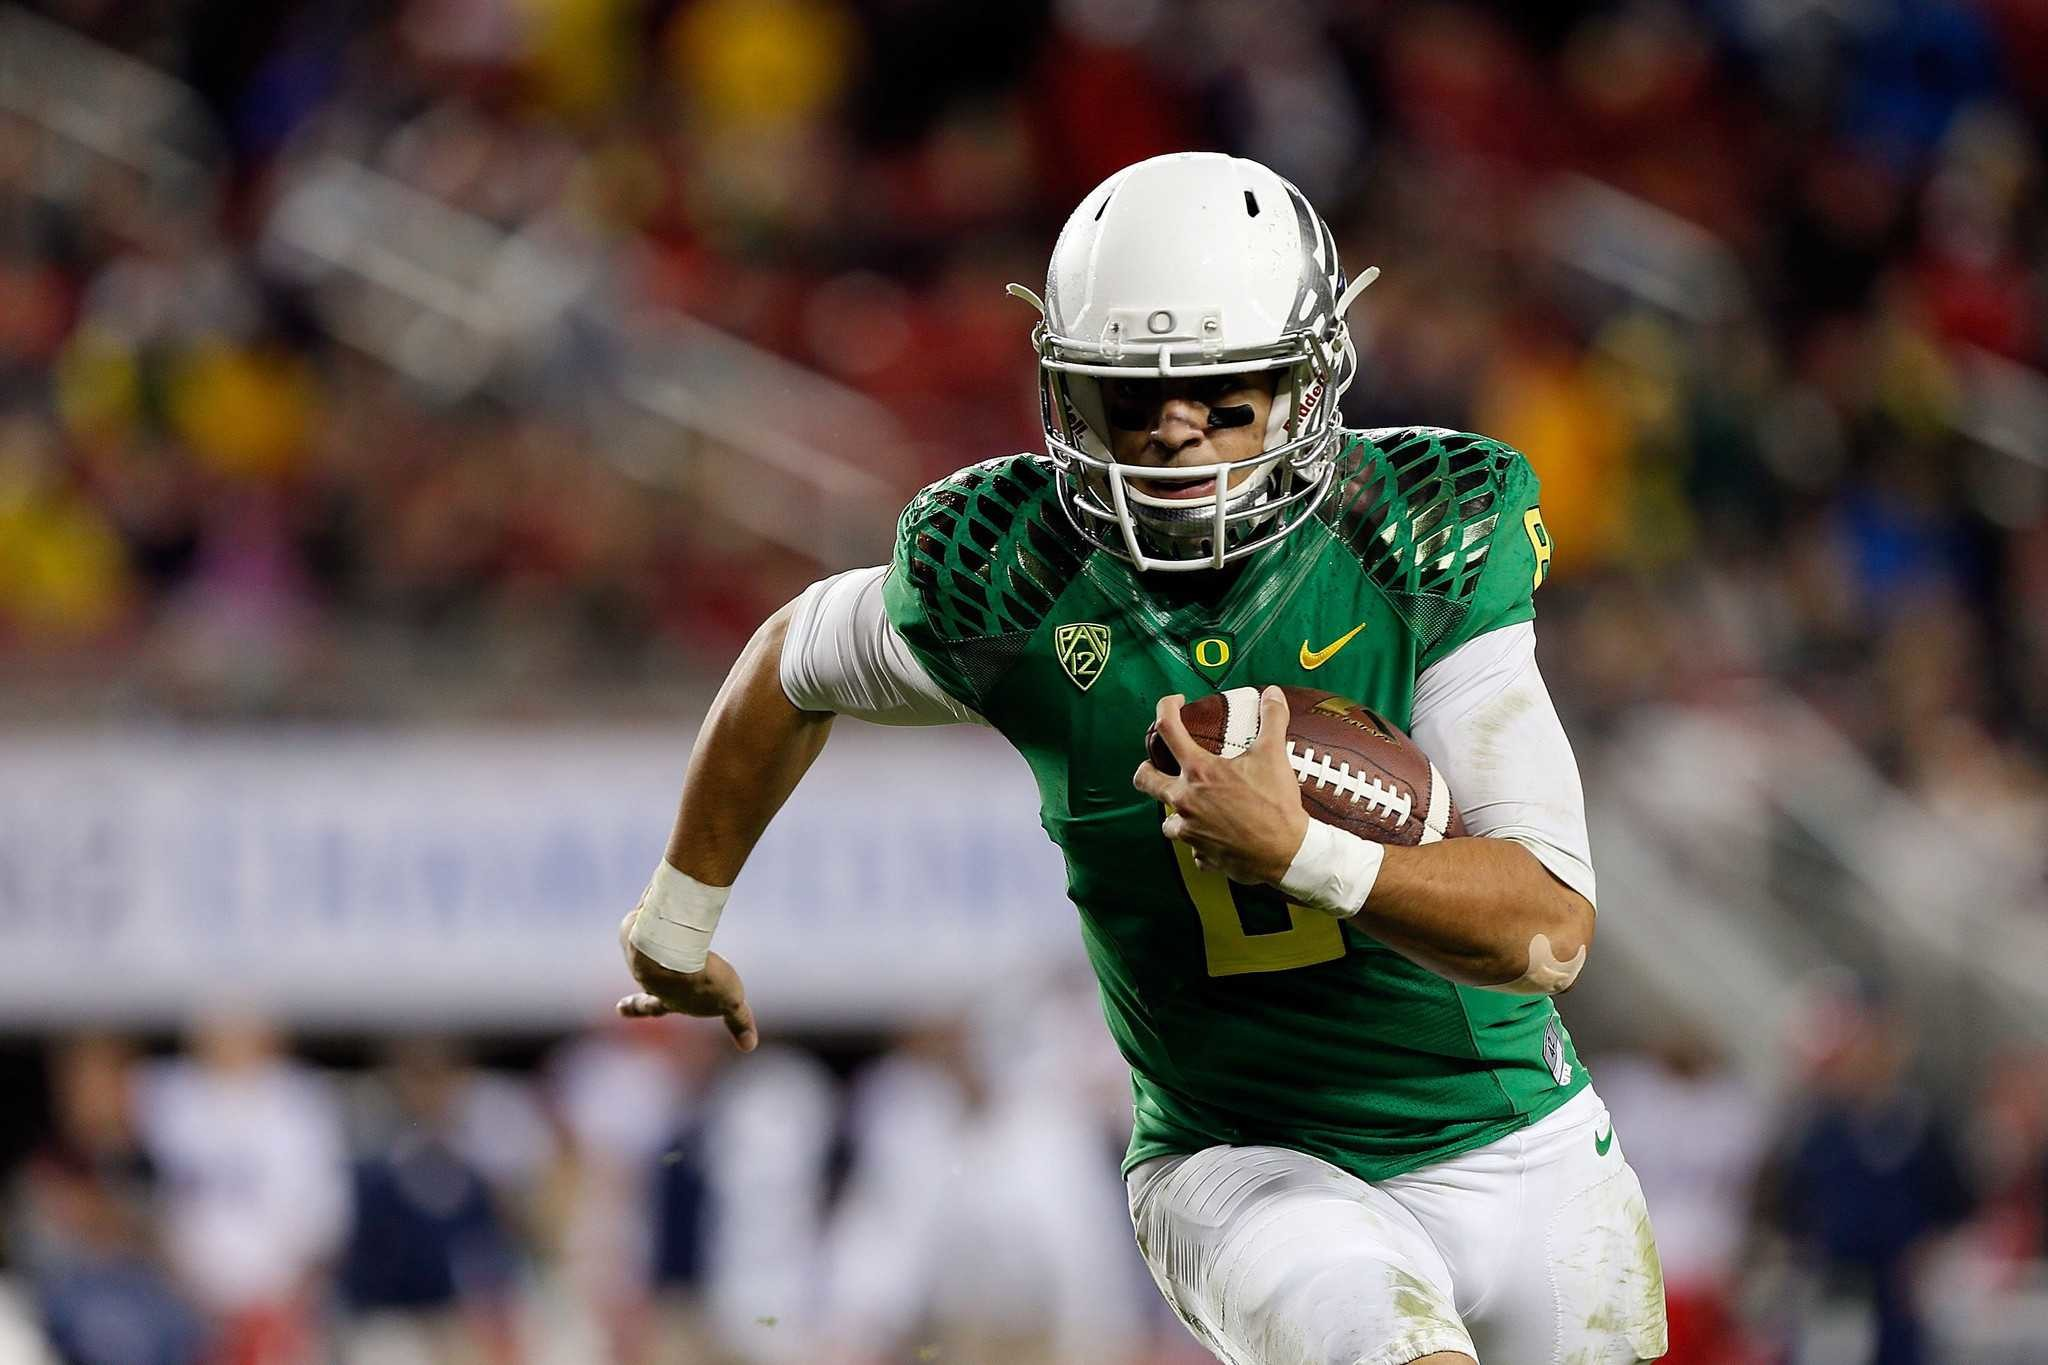 Res: 2048x1365, Usc Wont Mind If Marcus Mariota Wins Heisman And Heads To Nfl Wallpaper  Pictures Of For Iphone Hd Pics